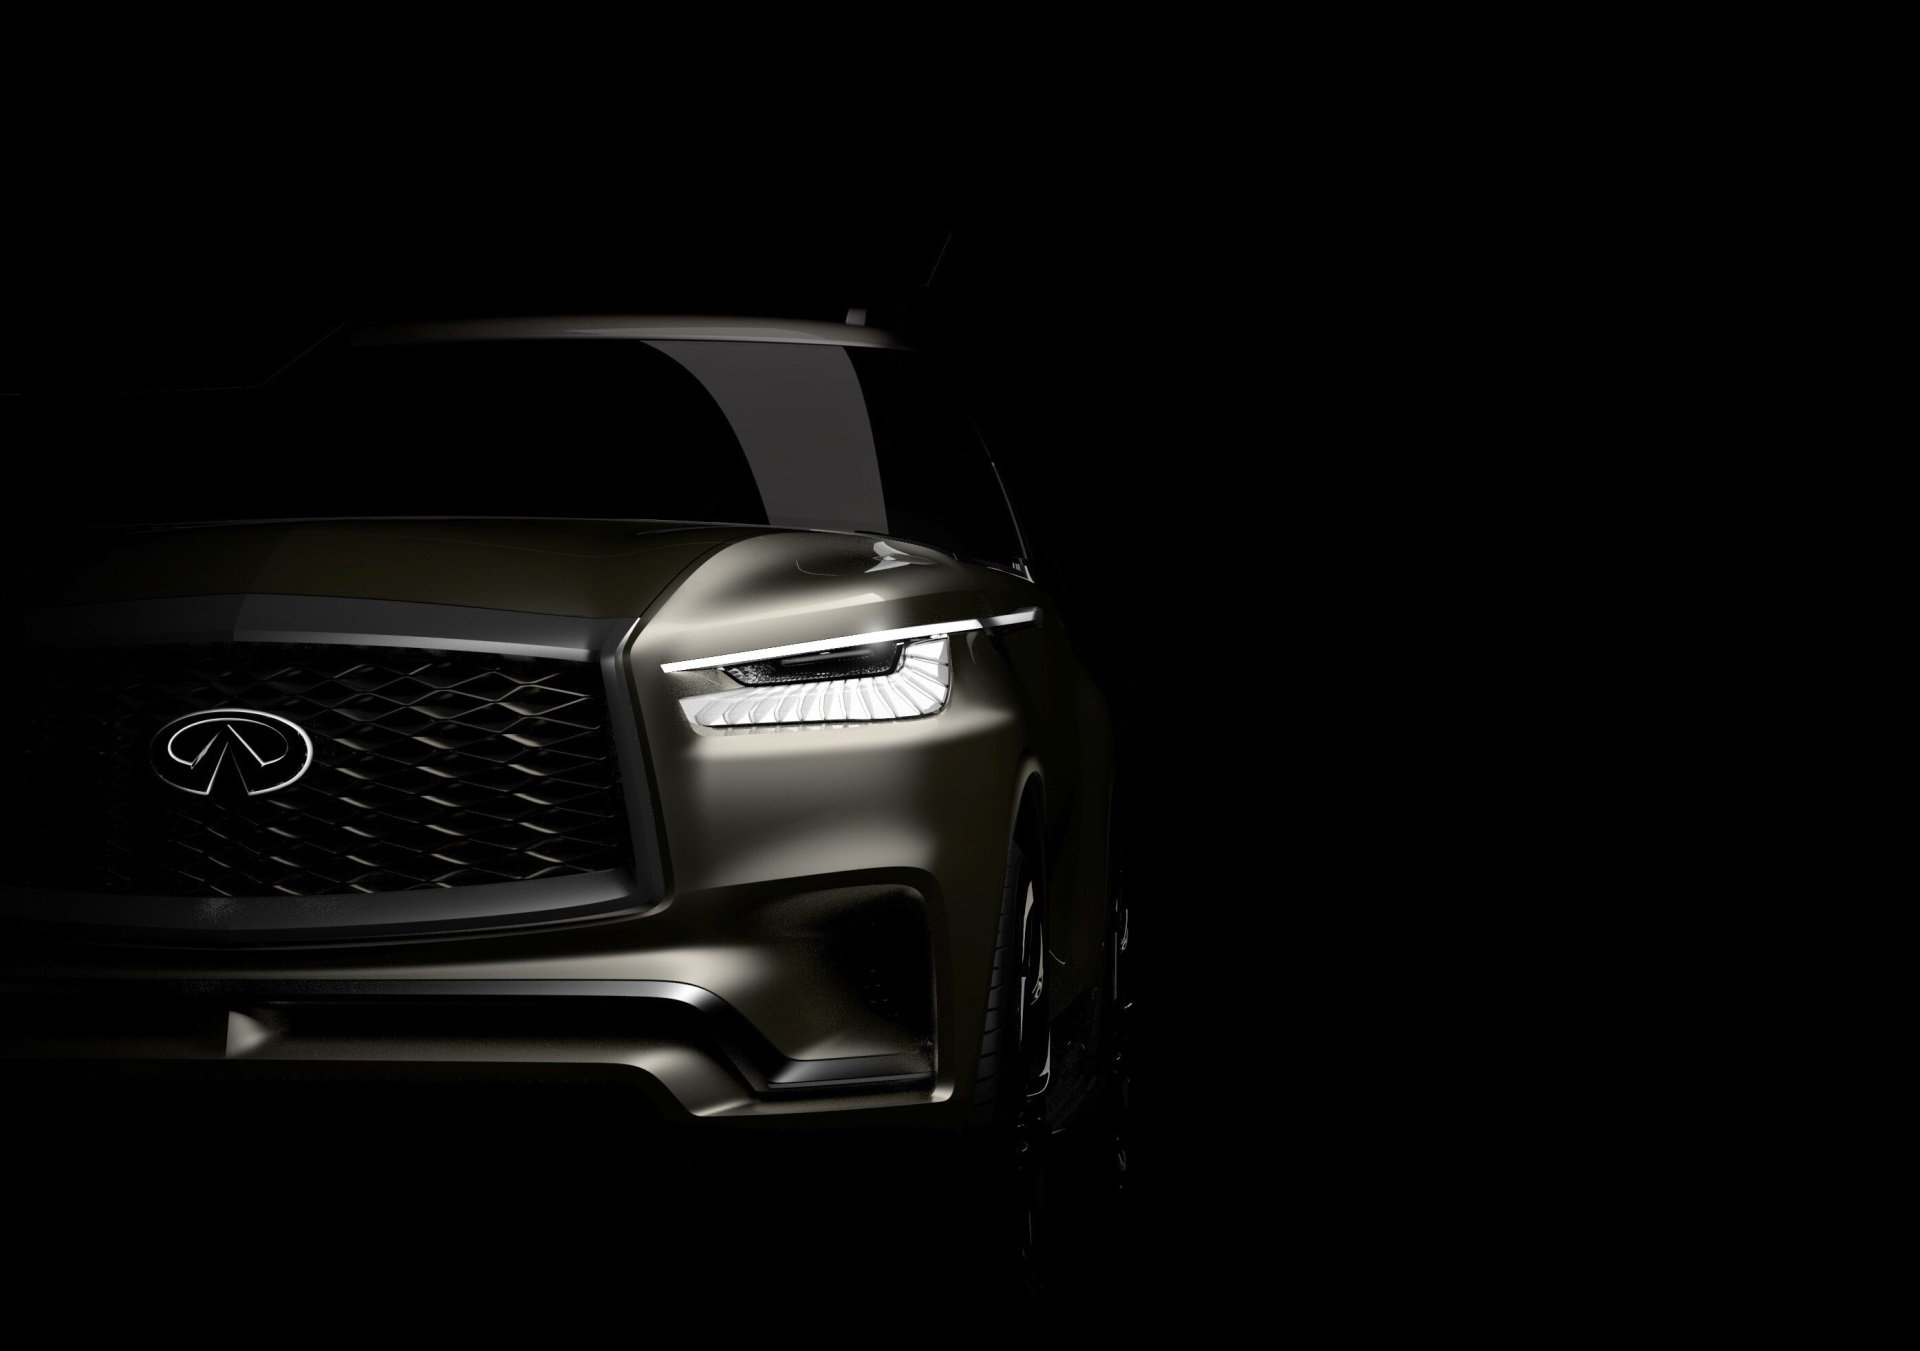 1920x1351 - Infiniti QX80 Wallpapers 17